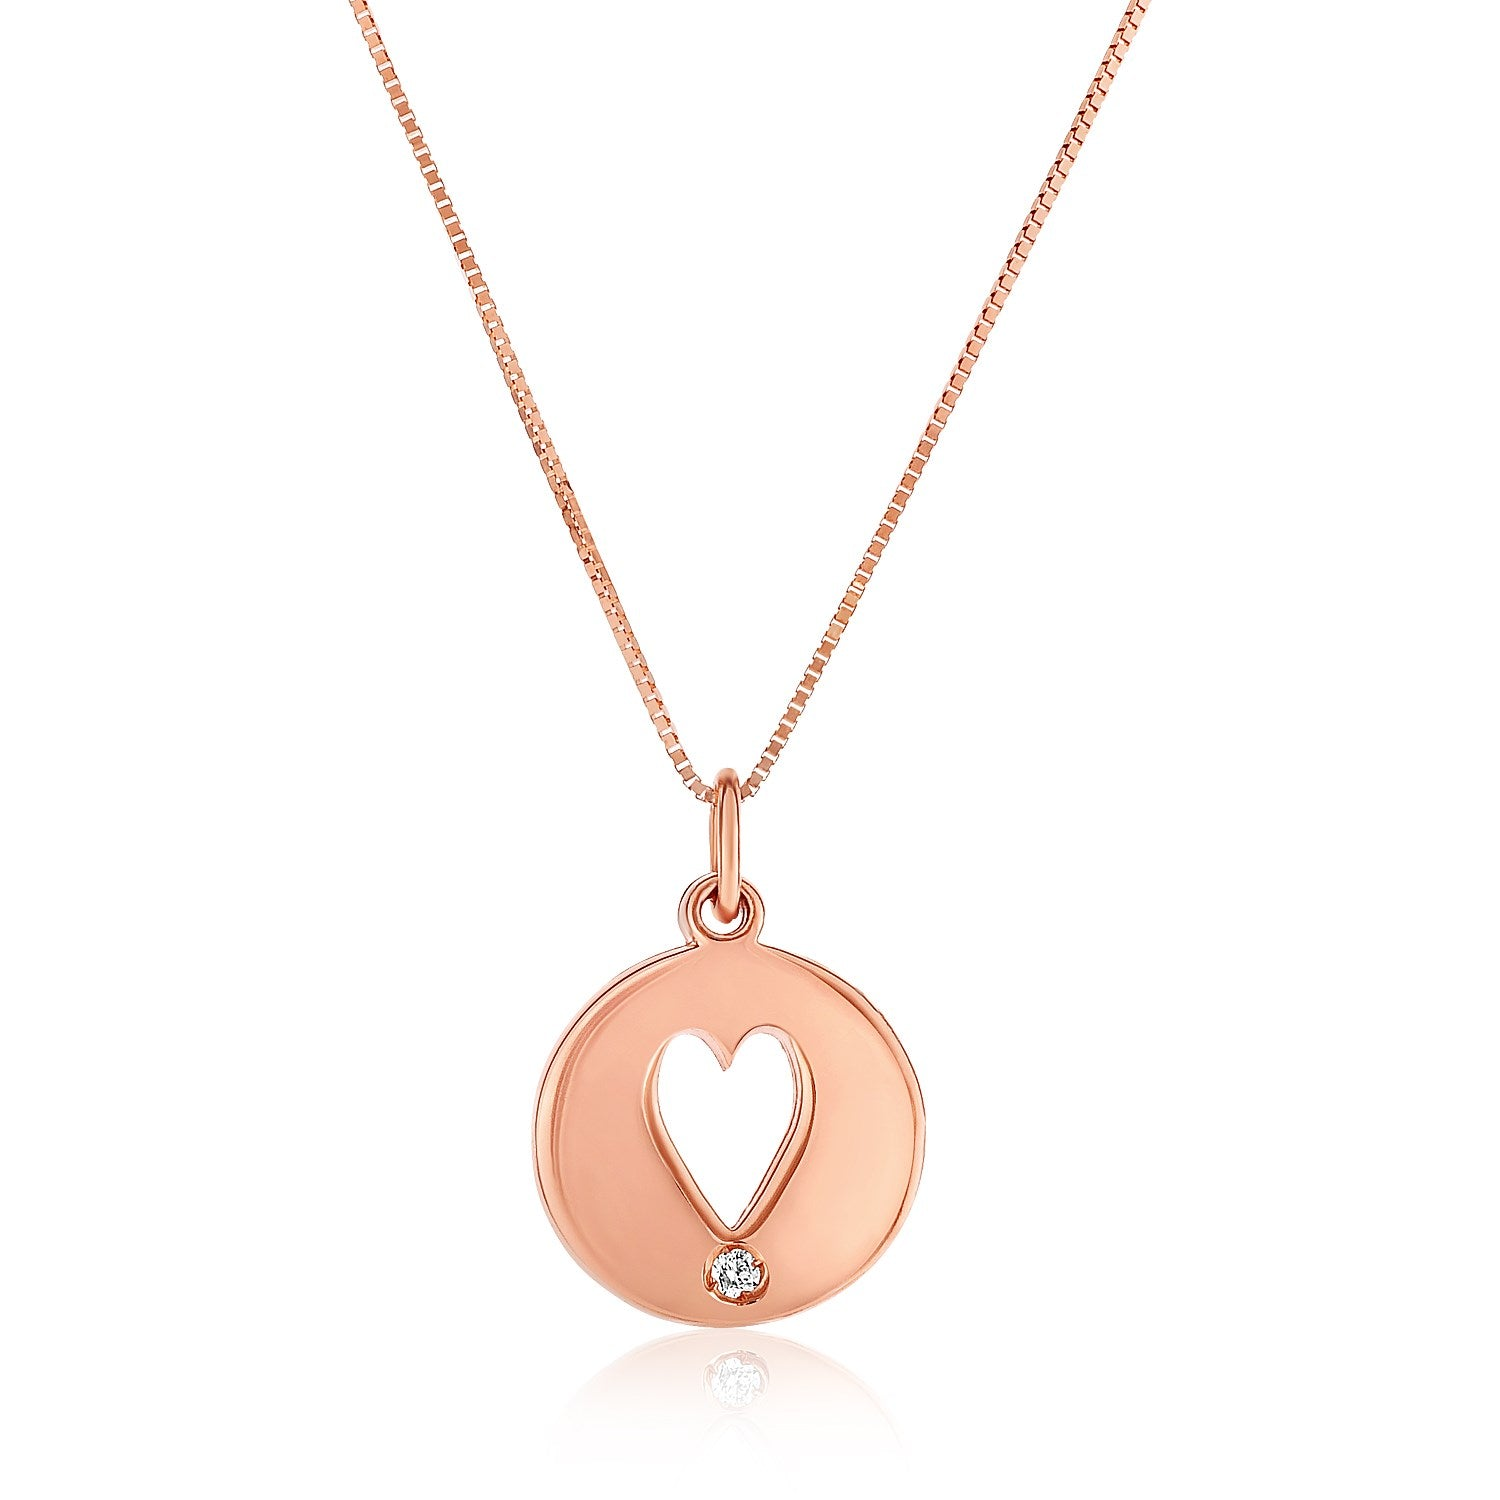 14k rose gold necklace with gold and diamond cutout heart pendant 14k rose gold necklace with gold and diamond cutout heart pendant aloadofball Image collections